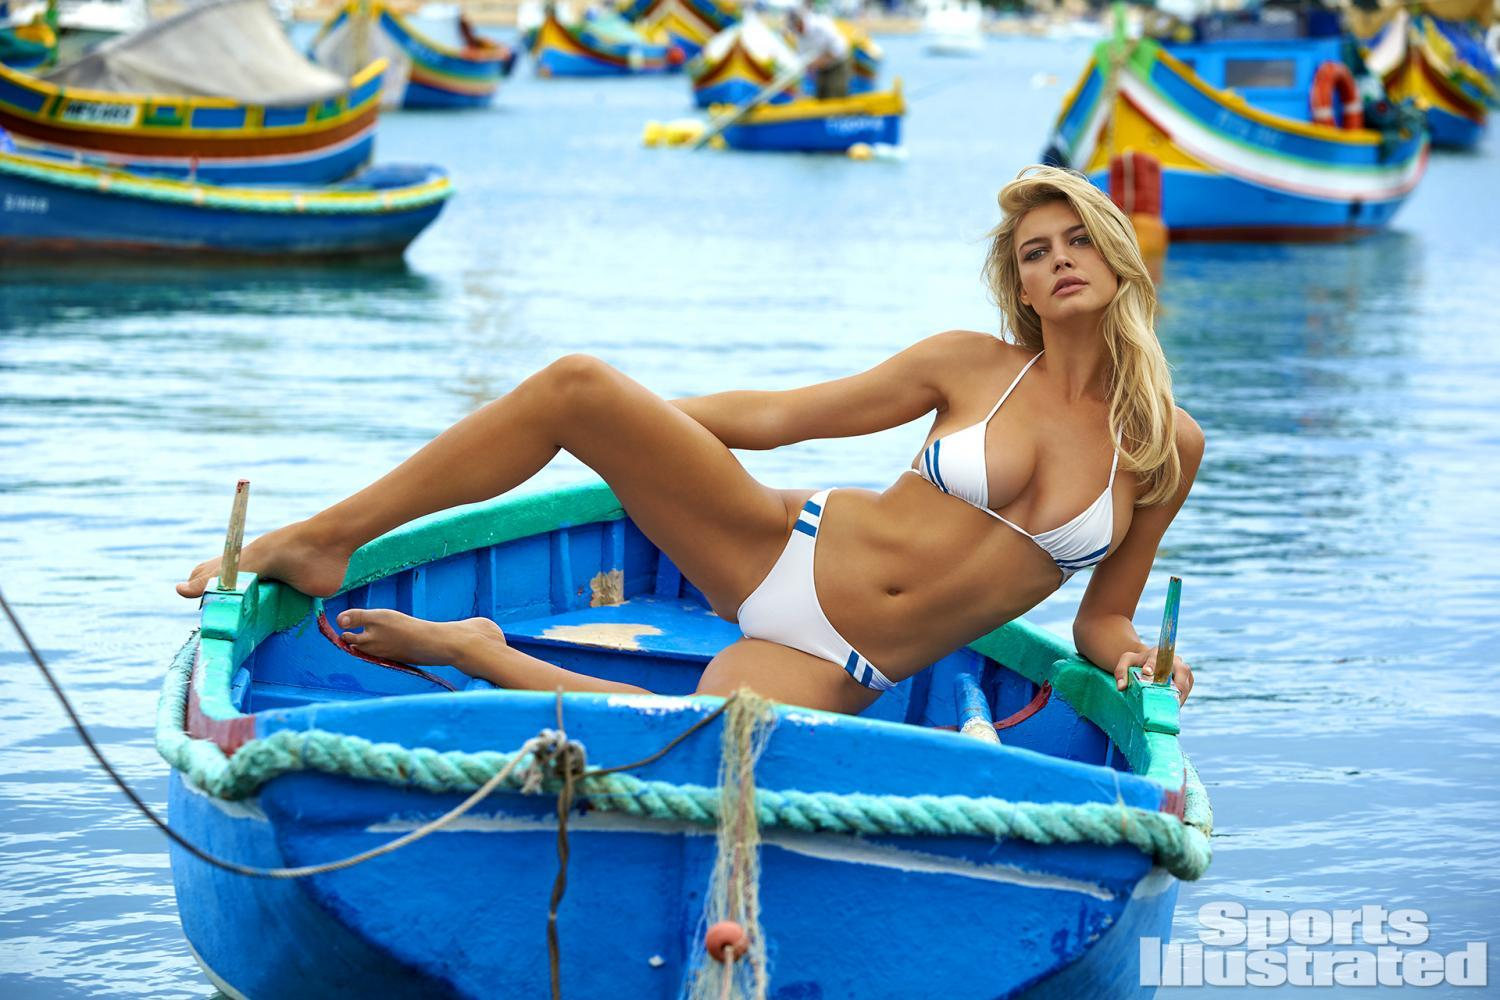 kelly rohrbach 2017 sports illustratedkelly rohrbach instagram, kelly rohrbach foto, kelly rohrbach listal, kelly rohrbach zimbio, kelly rohrbach 2017 sports illustrated, kelly rohrbach fan, kelly rohrbach wdw, kelly rohrbach engaged, kelly rohrbach wikipedia, kelly rohrbach and leonardo dicaprio, kelly rohrbach gq, kelly rohrbach baywatch, kelly rohrbach sports illustrated swimsuit, kelly rohrbach wallpaper, kelly rohrbach bellazon, kelly rohrbach maxim, kelly rohrbach photos, kelly rohrbach birthday, kelly rohrbach boyfriend